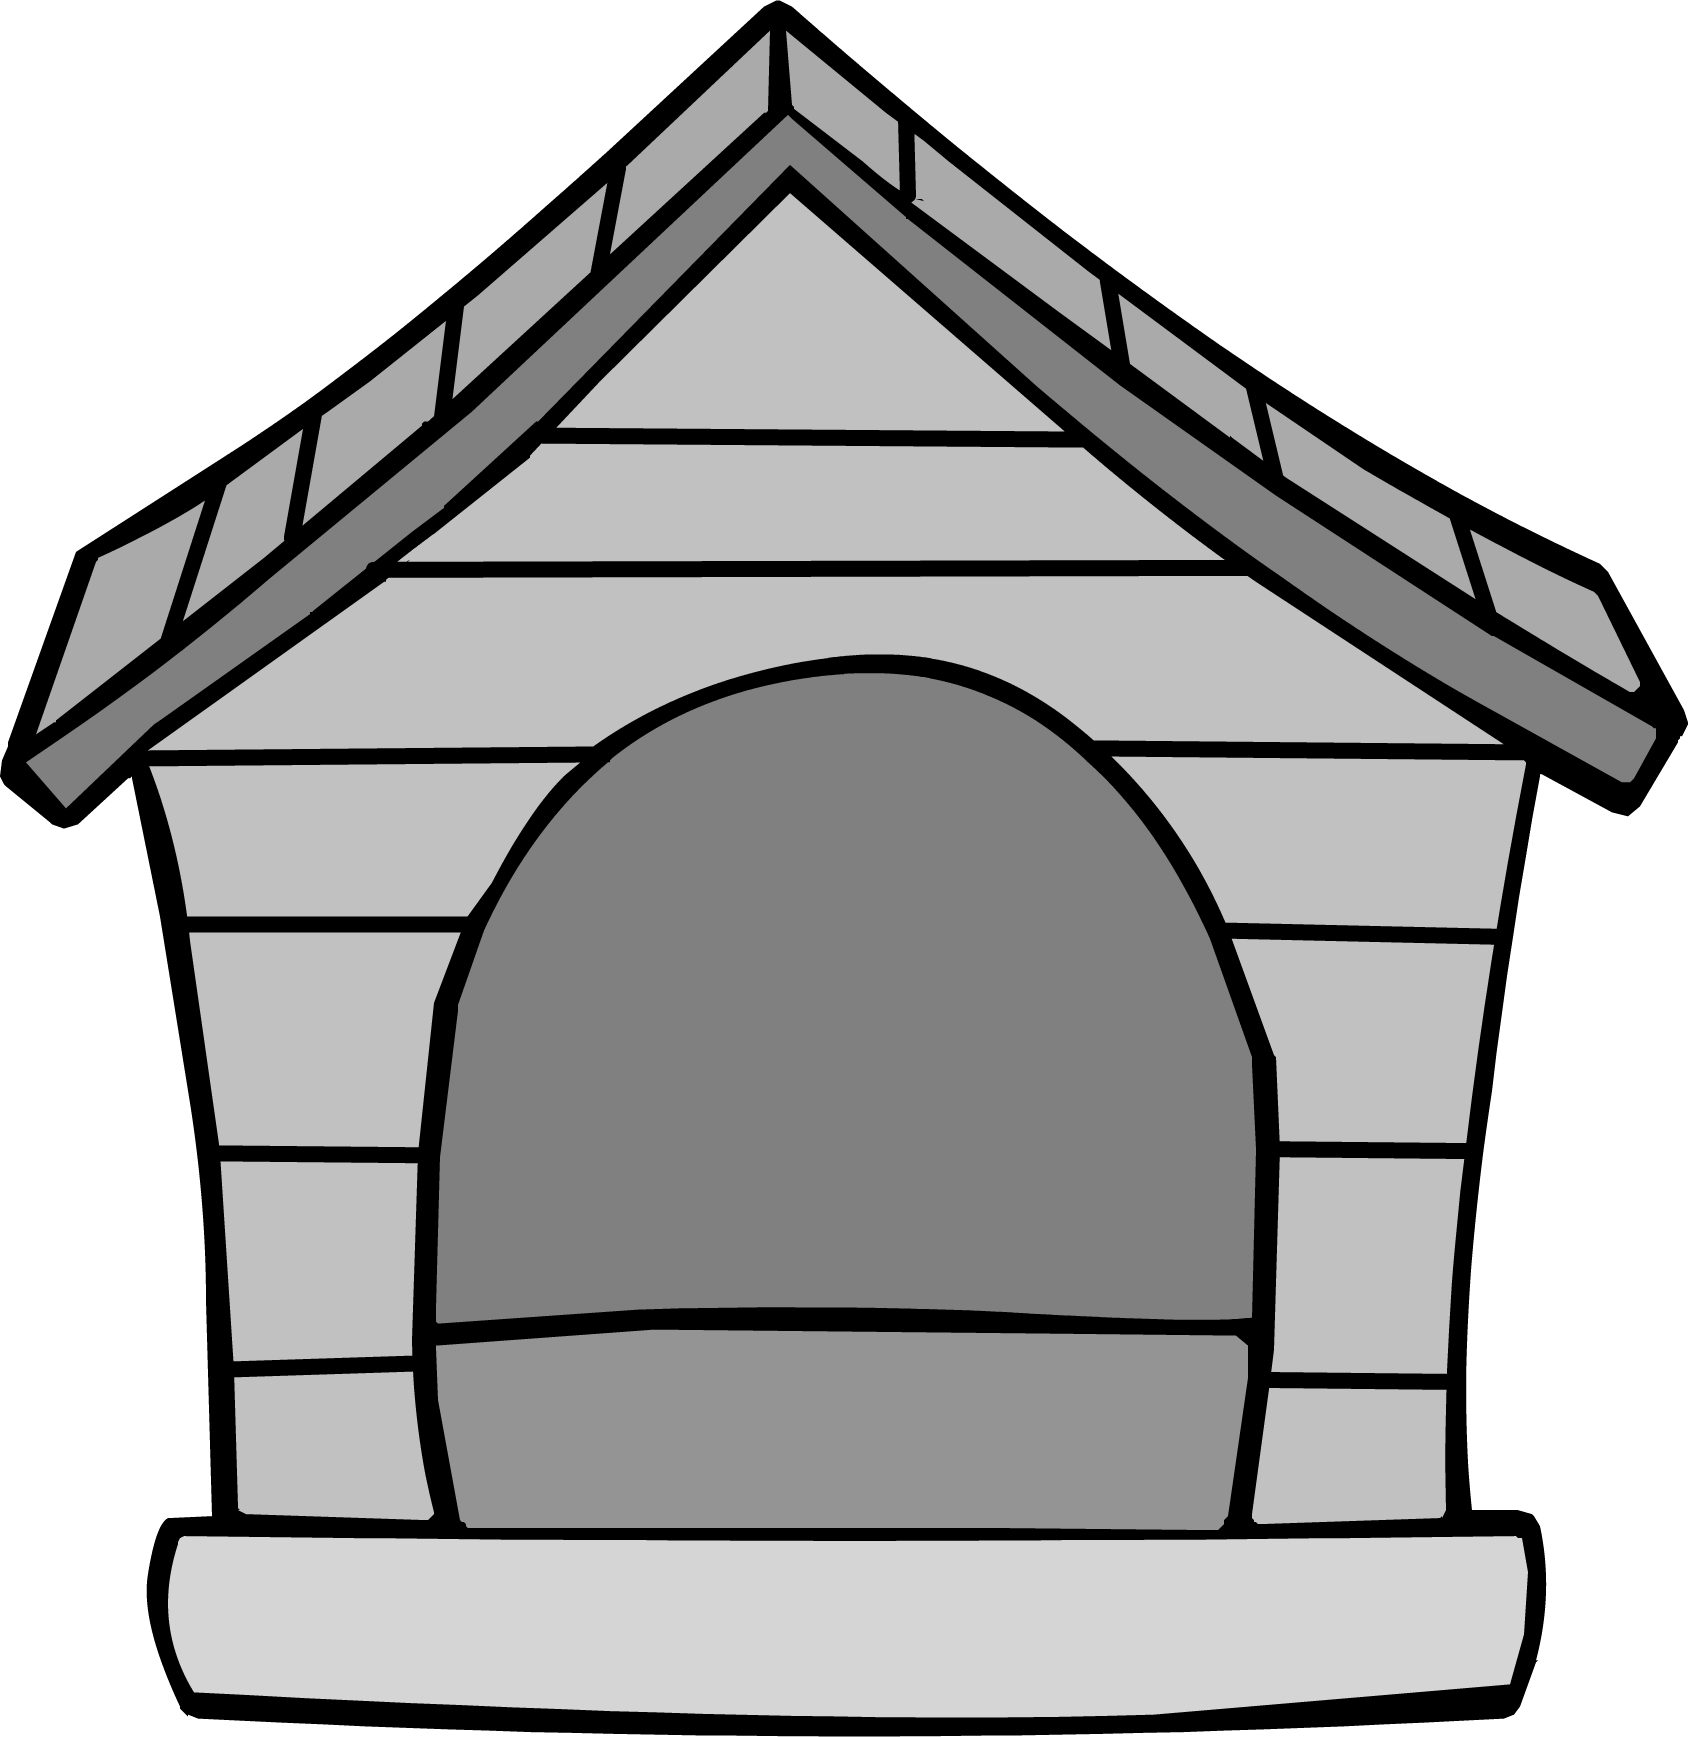 Dog house black and white clipart clipart free library Gray Puffle House | Club Penguin Wiki | FANDOM powered by Wikia clipart free library